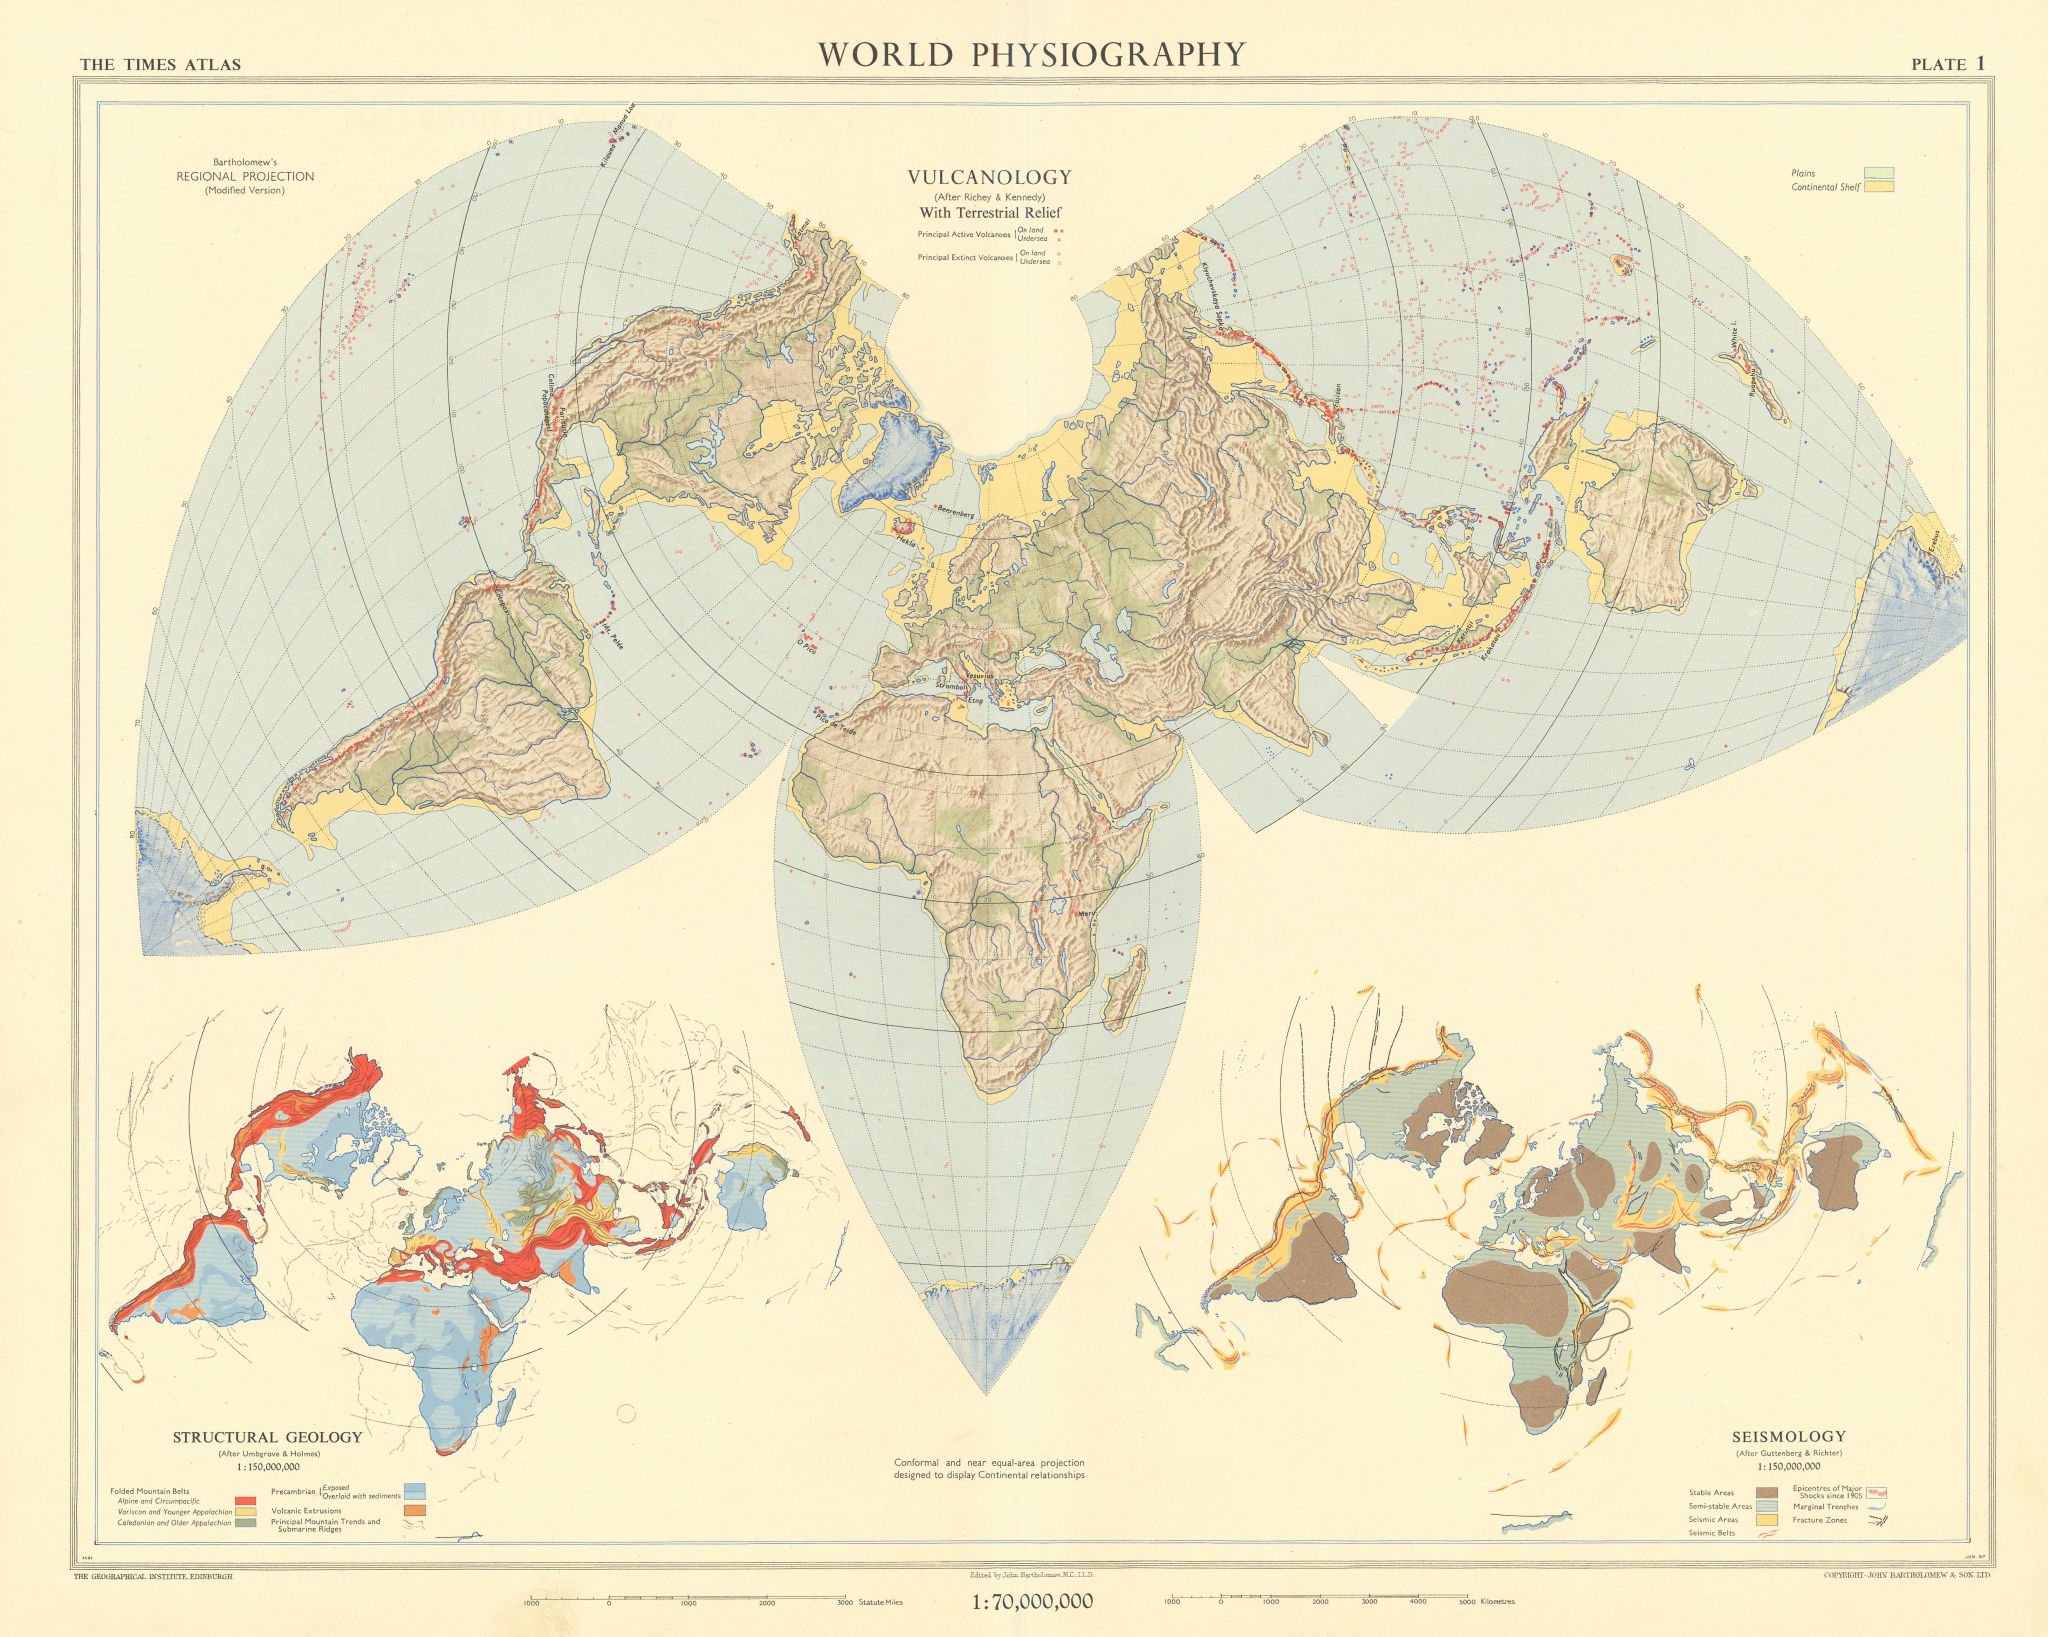 World Physiography. Vulcanology. Structural Geology. Seismology. TIMES 1958 map